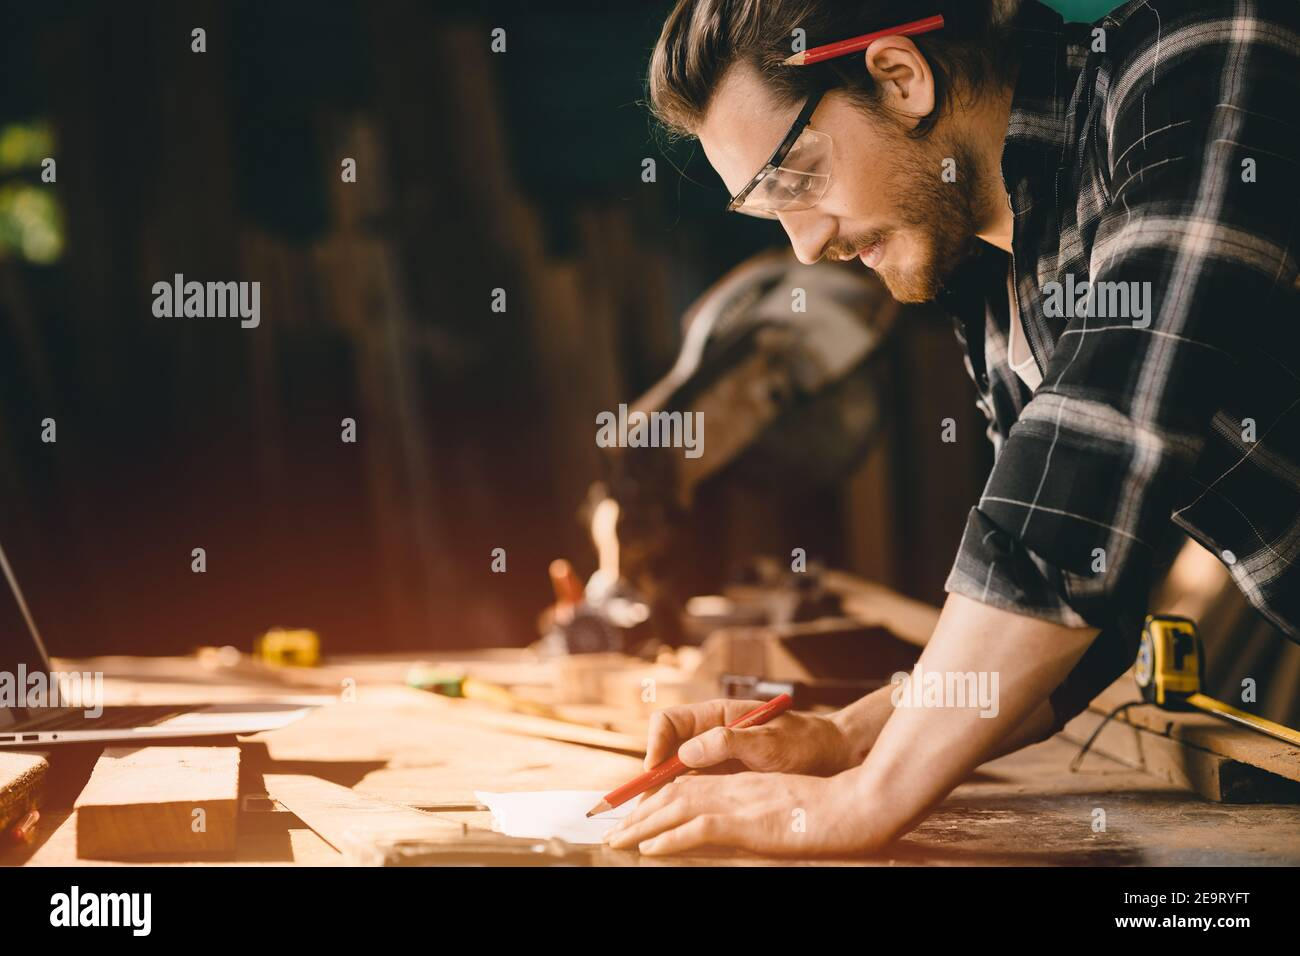 Happy Carpenter smiling to sketch design wooden furniture in wood workshop professional look high skill real authentic handcrafted working people. Stock Photo